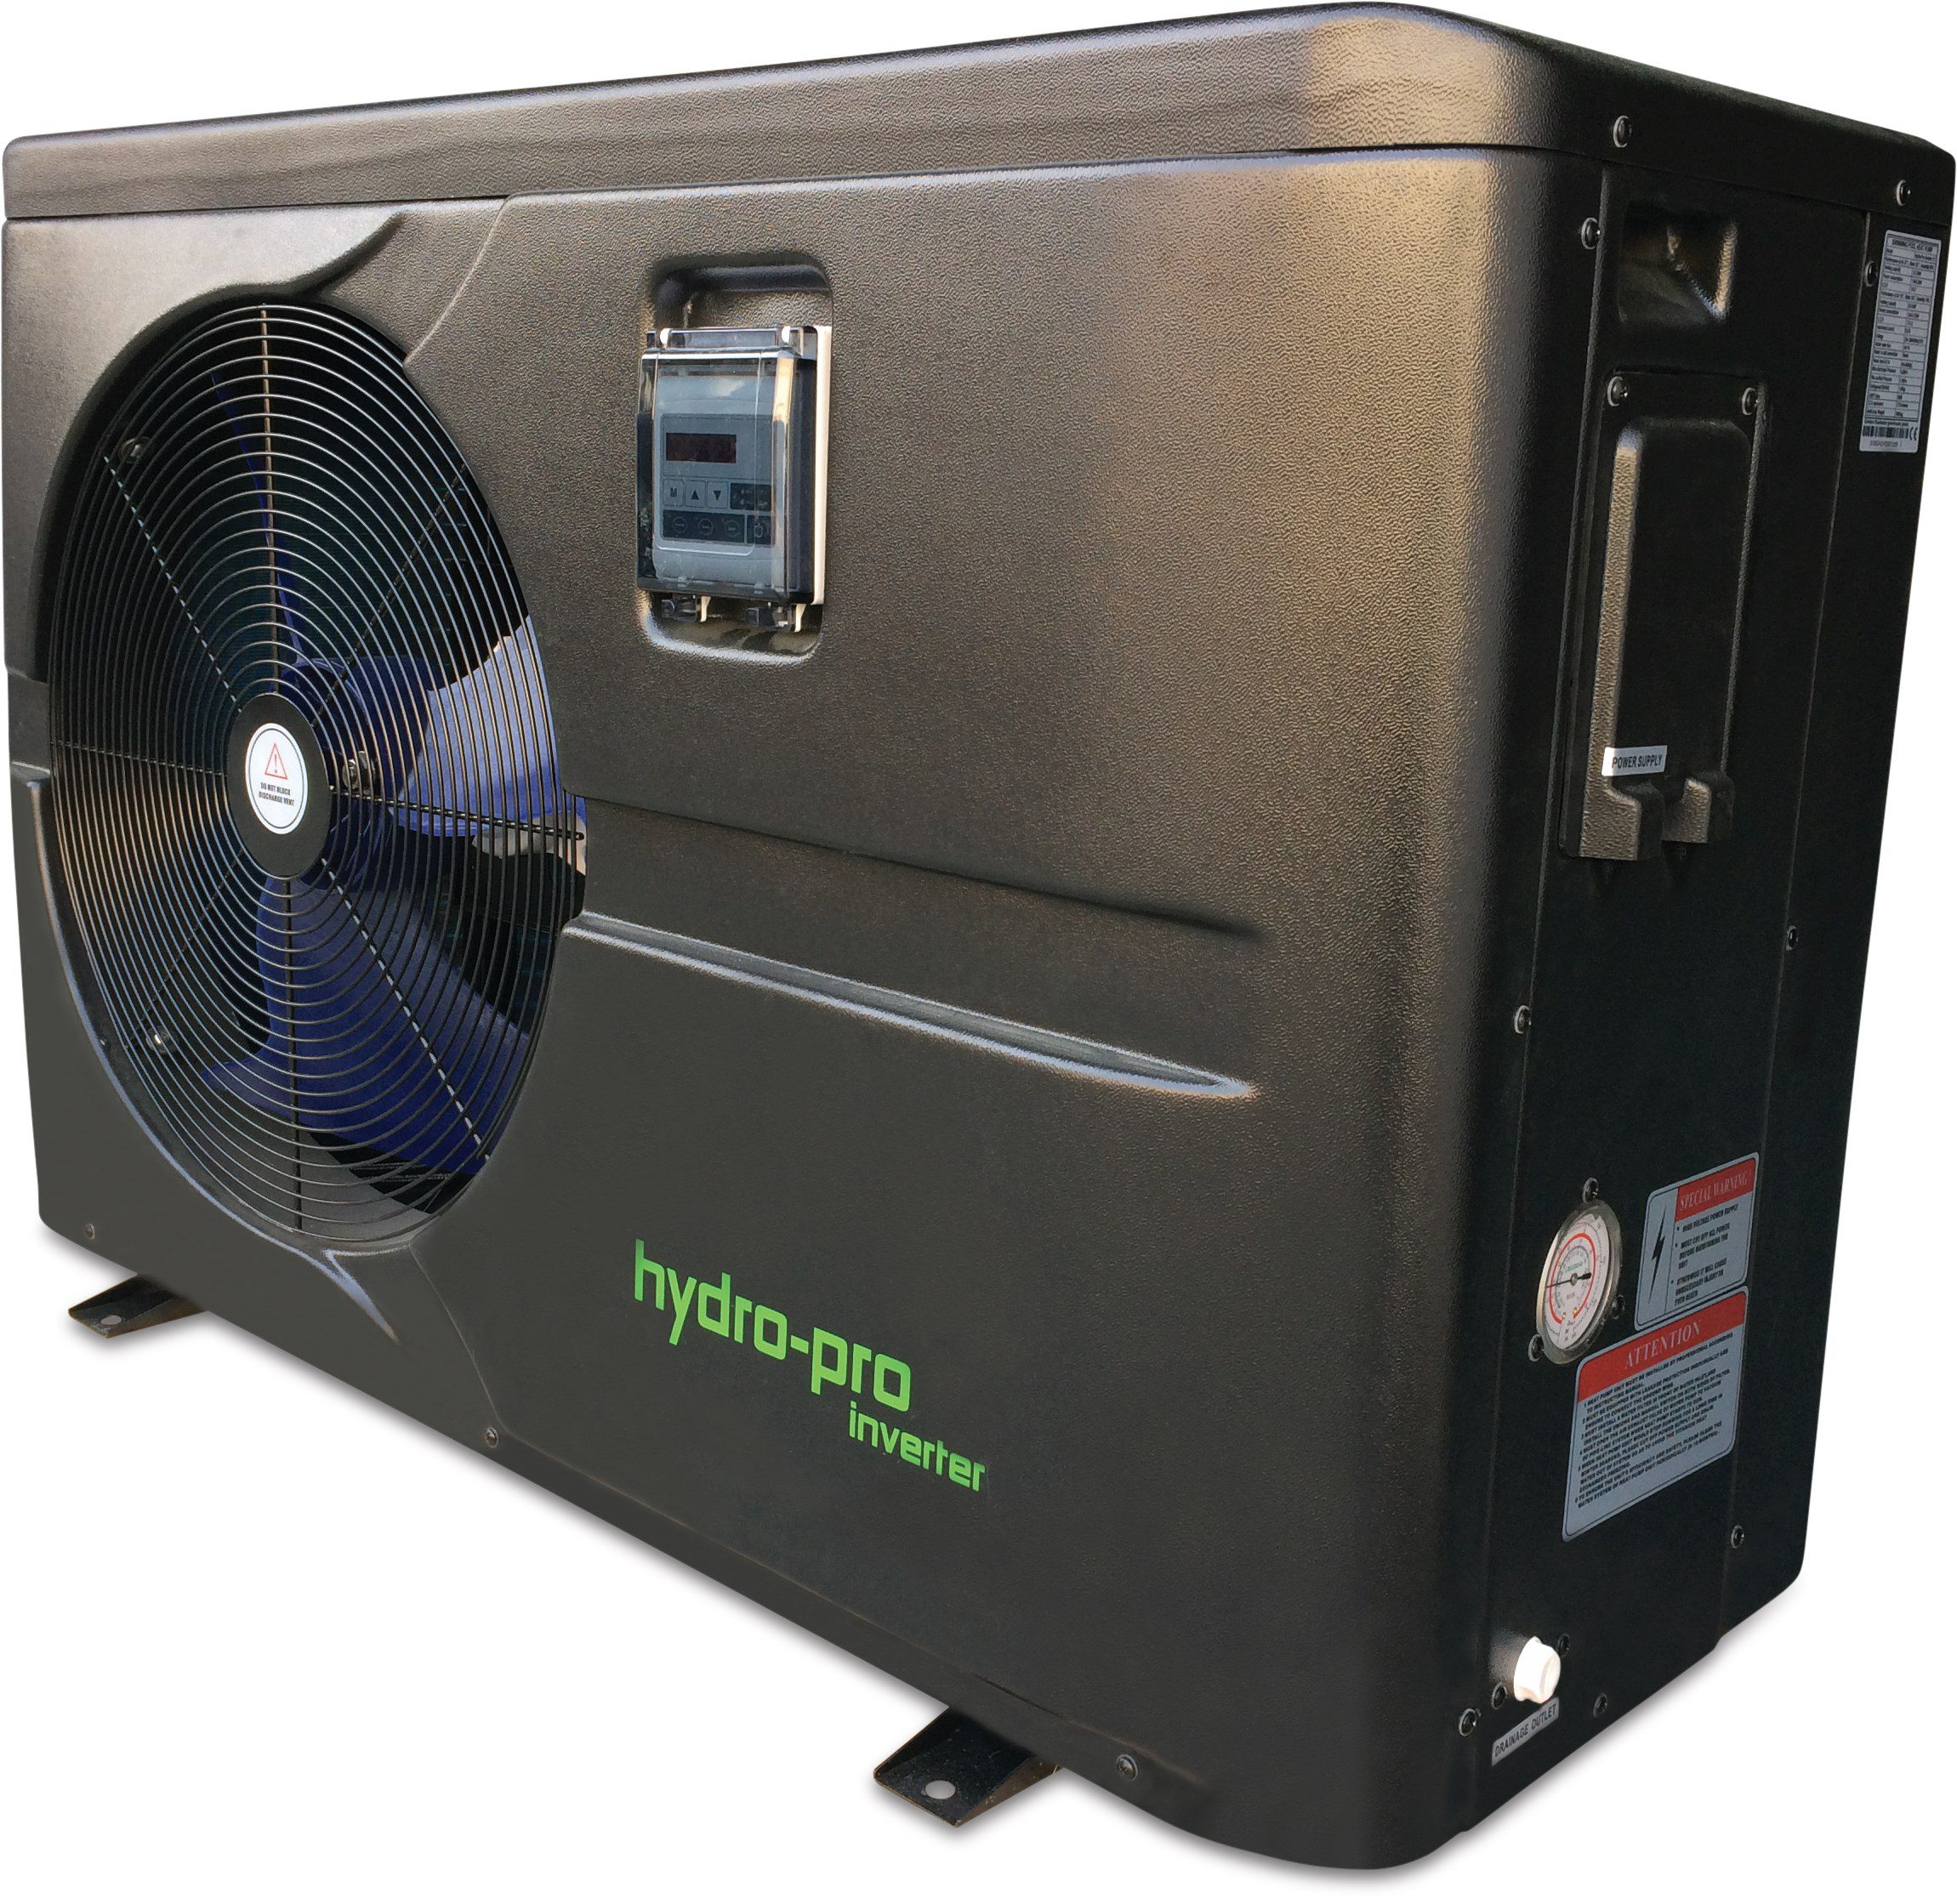 Hydro-Pro Heat Pump Inverter, Type Z Horizontal